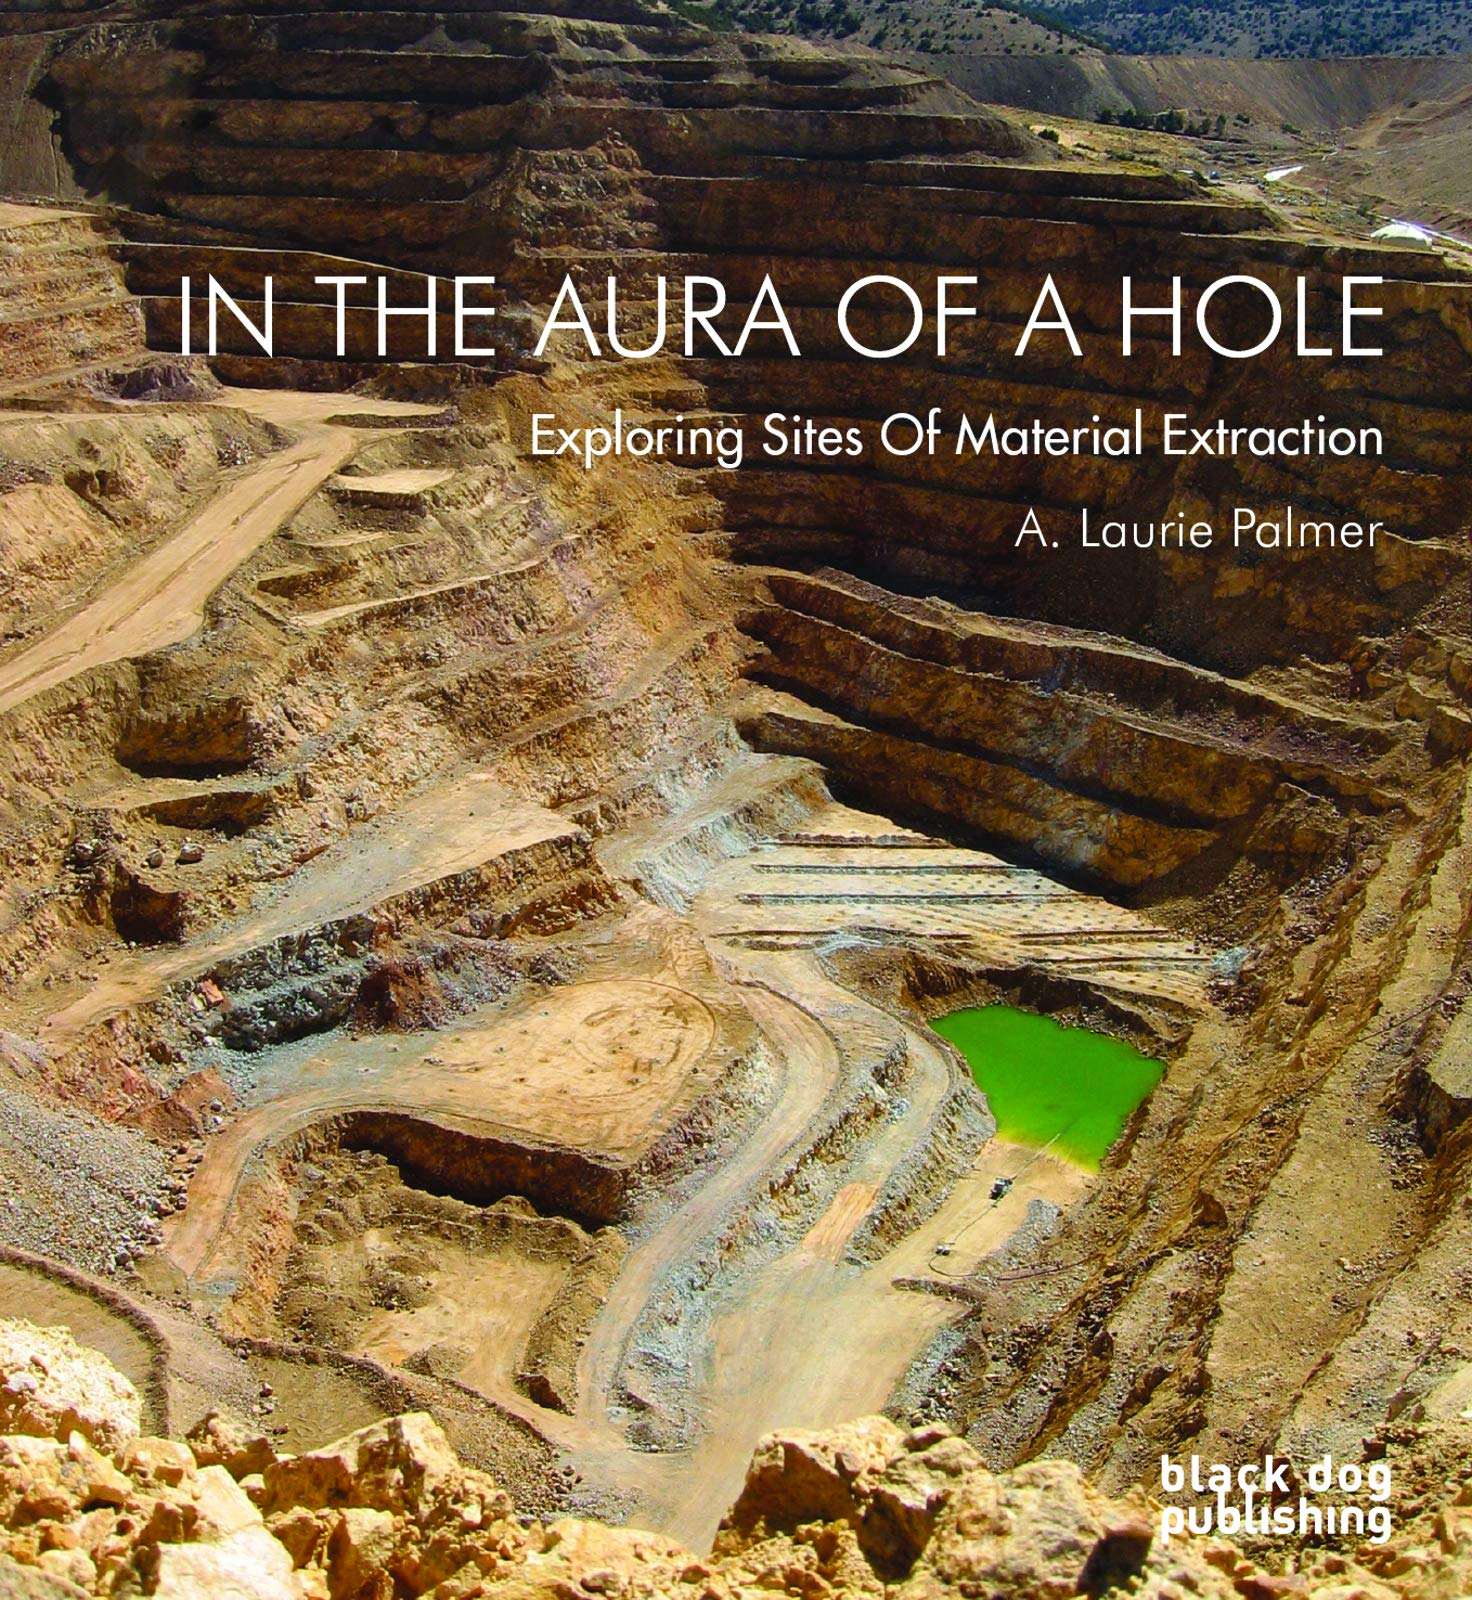 In The Aura Of A Hole Exploring Sites Of Material Extraction Palmer A Laurie 9781908966582 Amazon Com Books